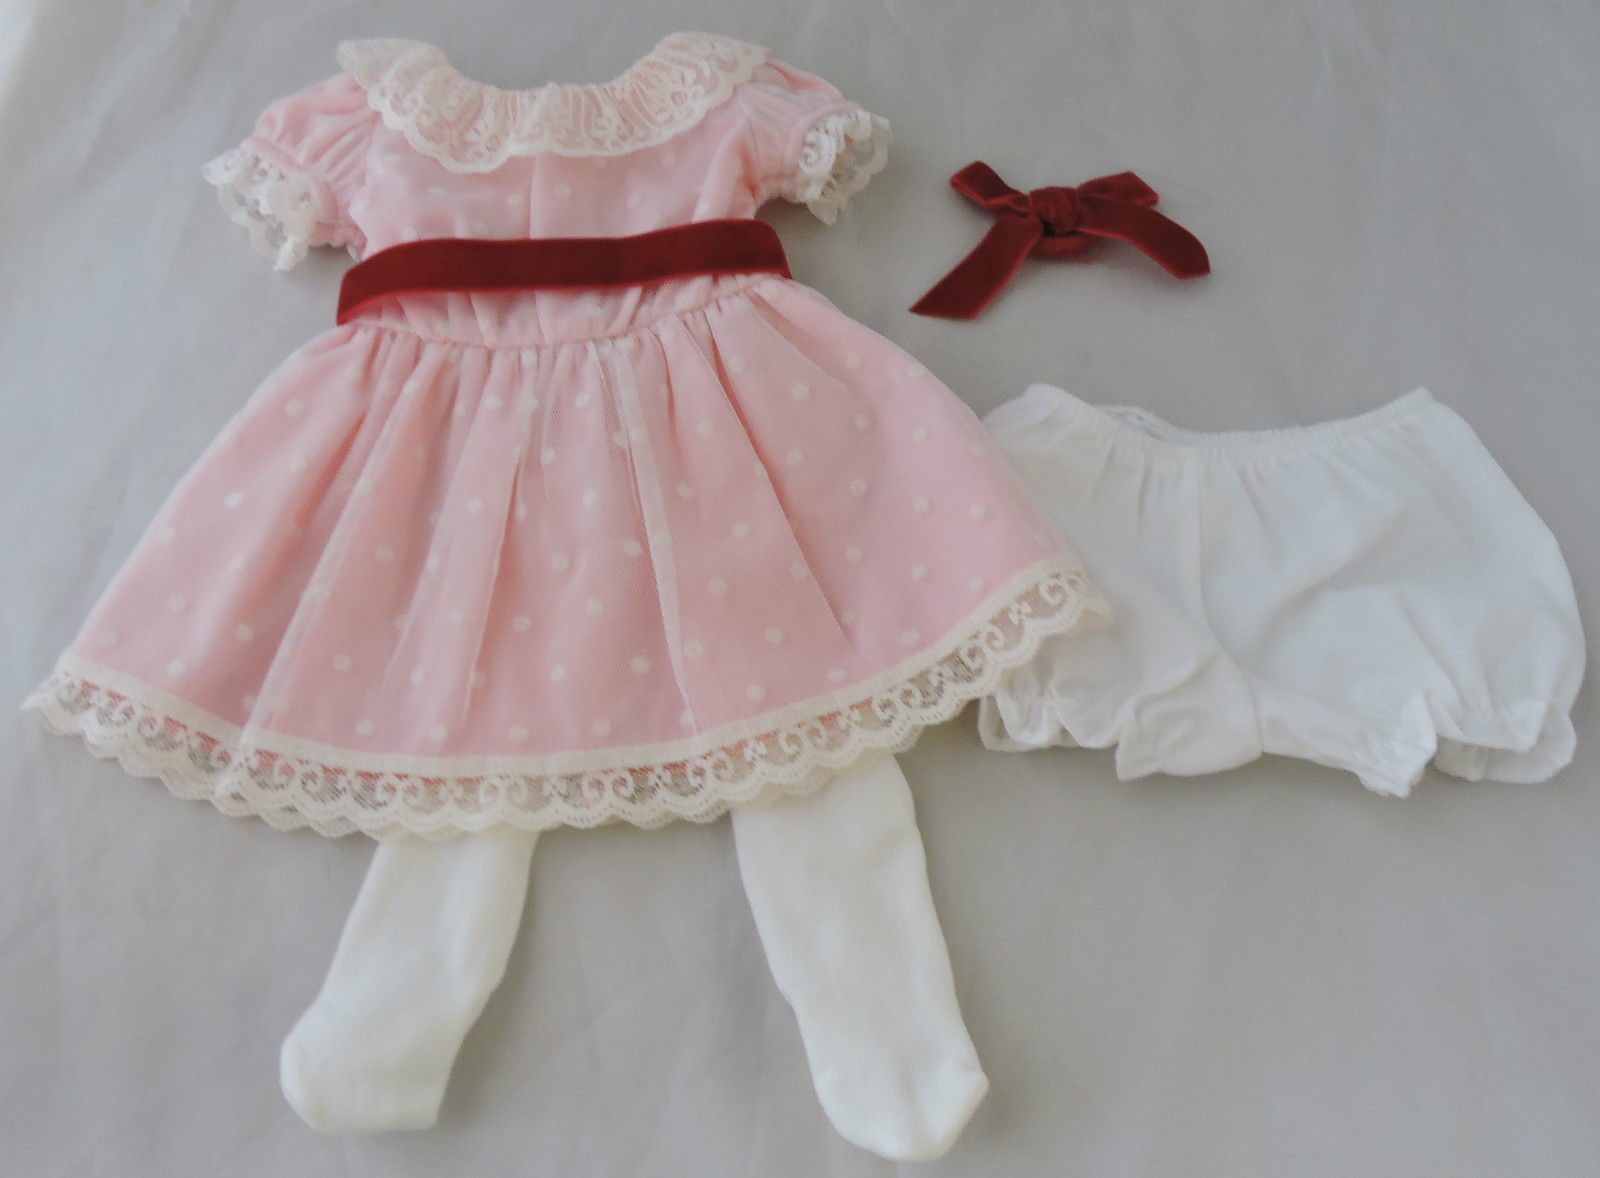 American girl samantha new meet outfit